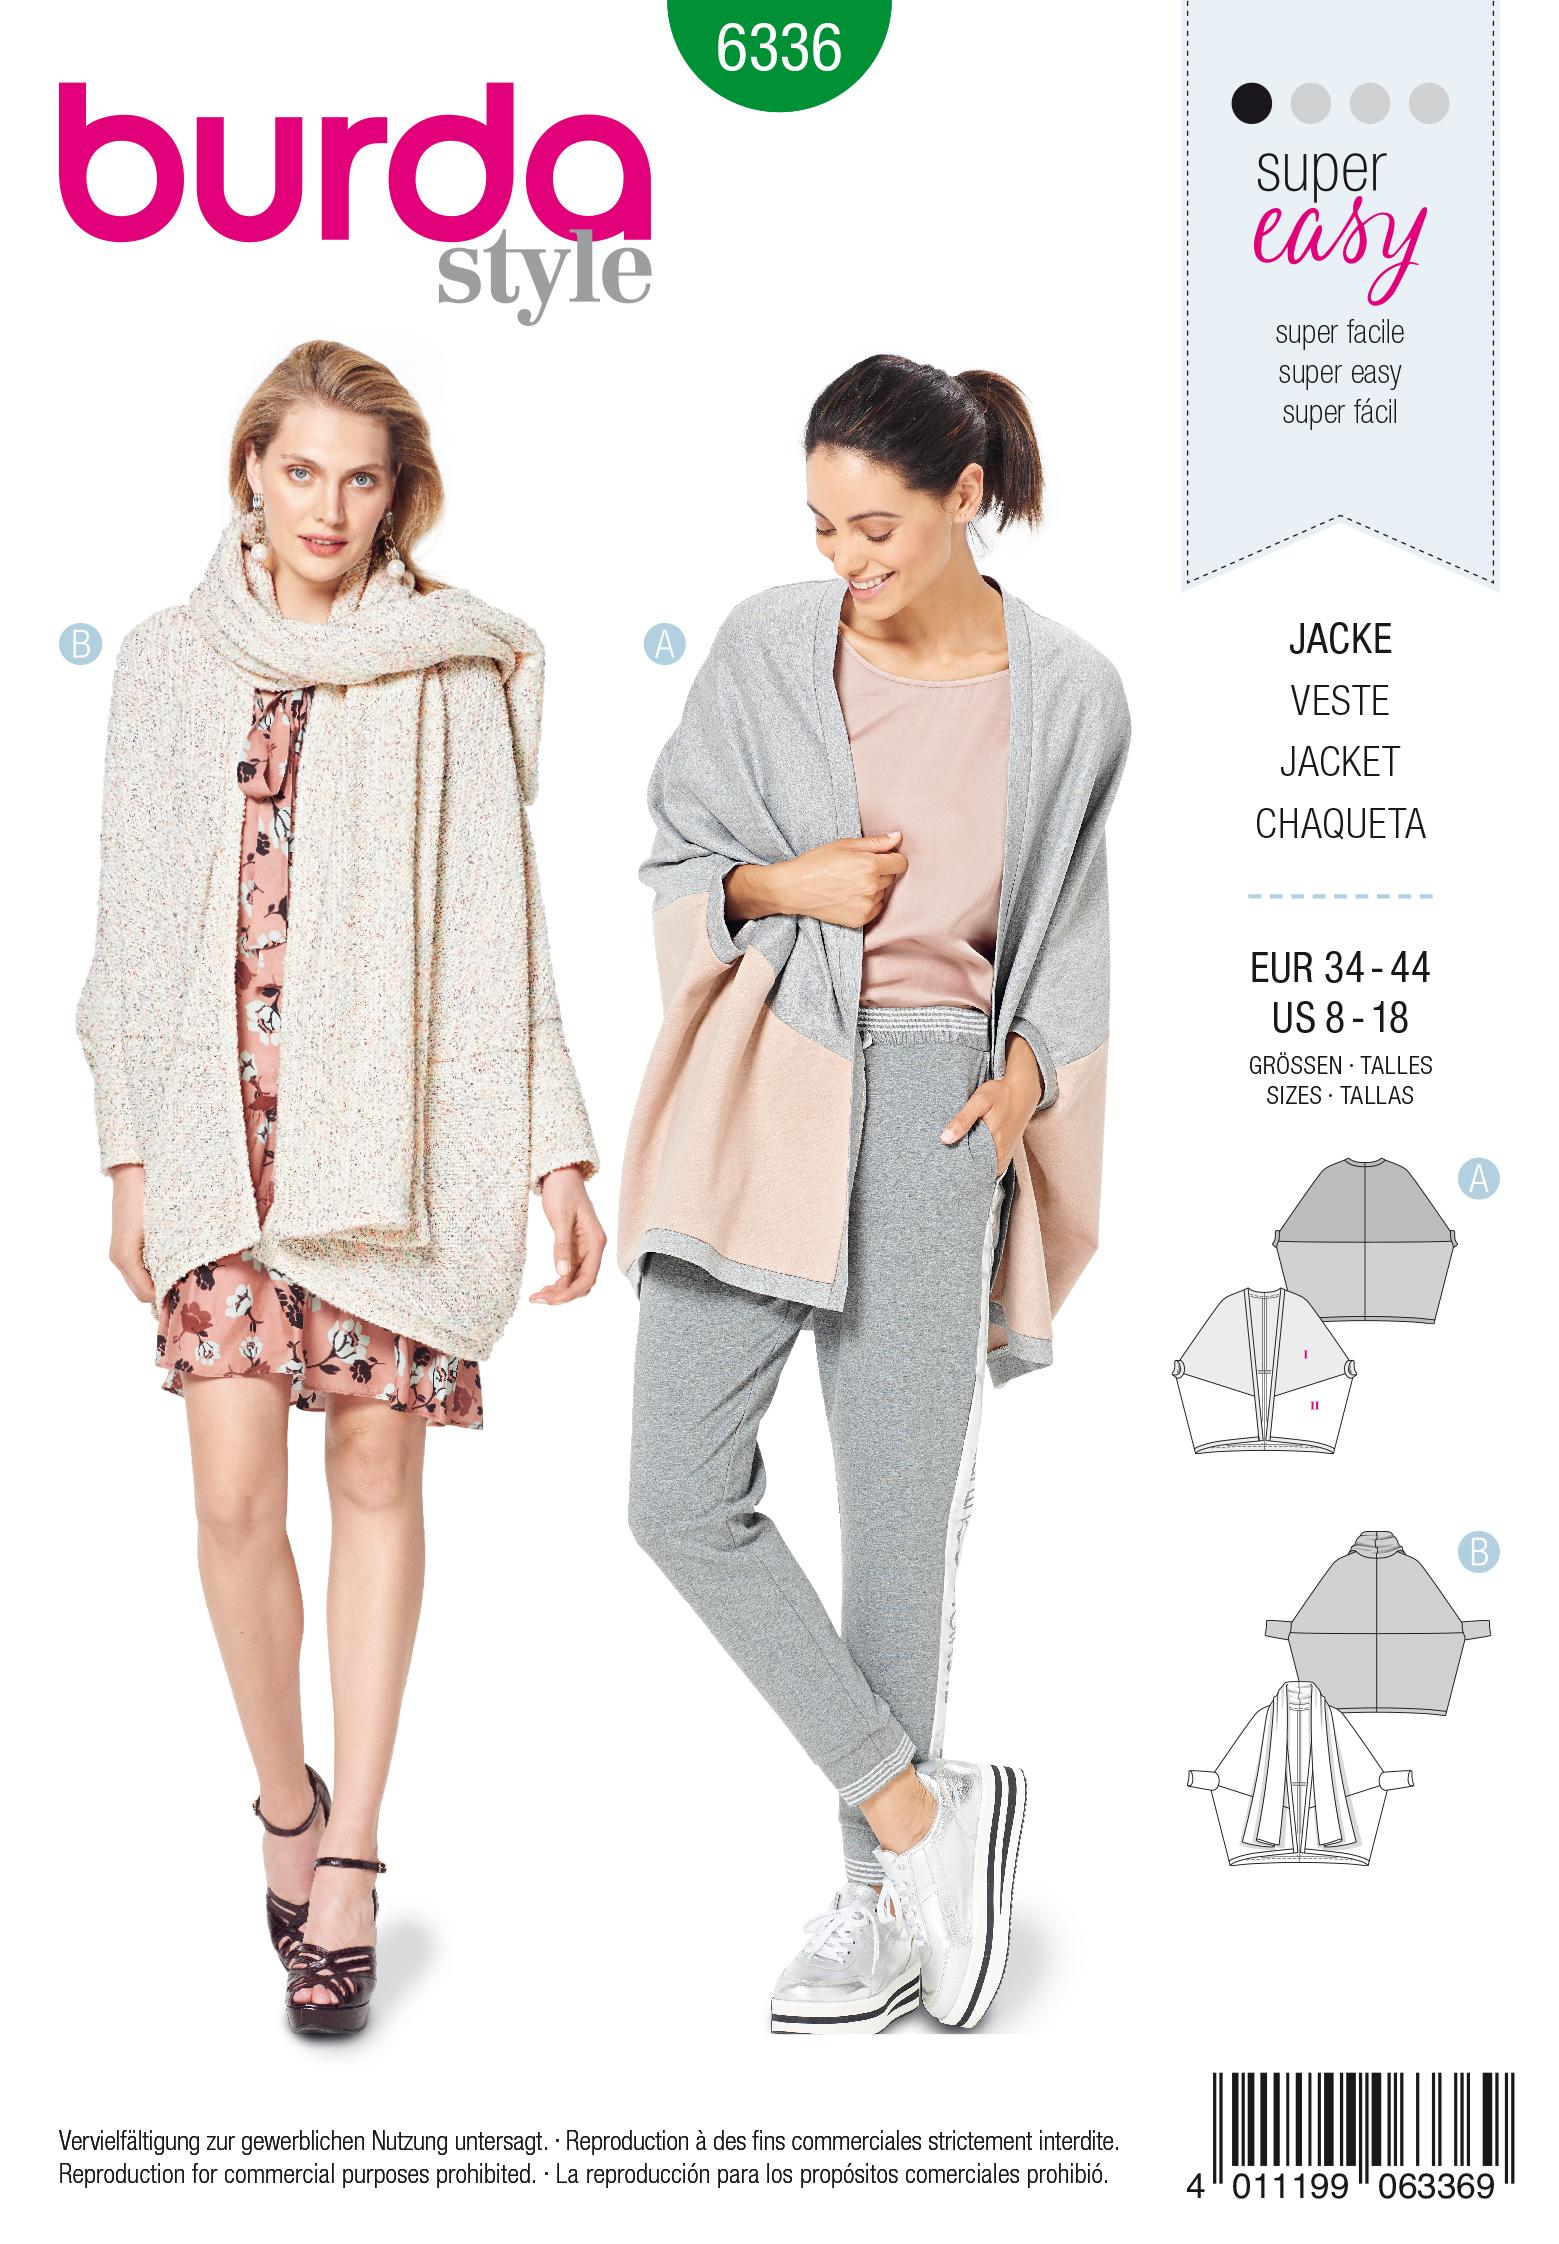 Burda 6336 Misses' over-sized jacket